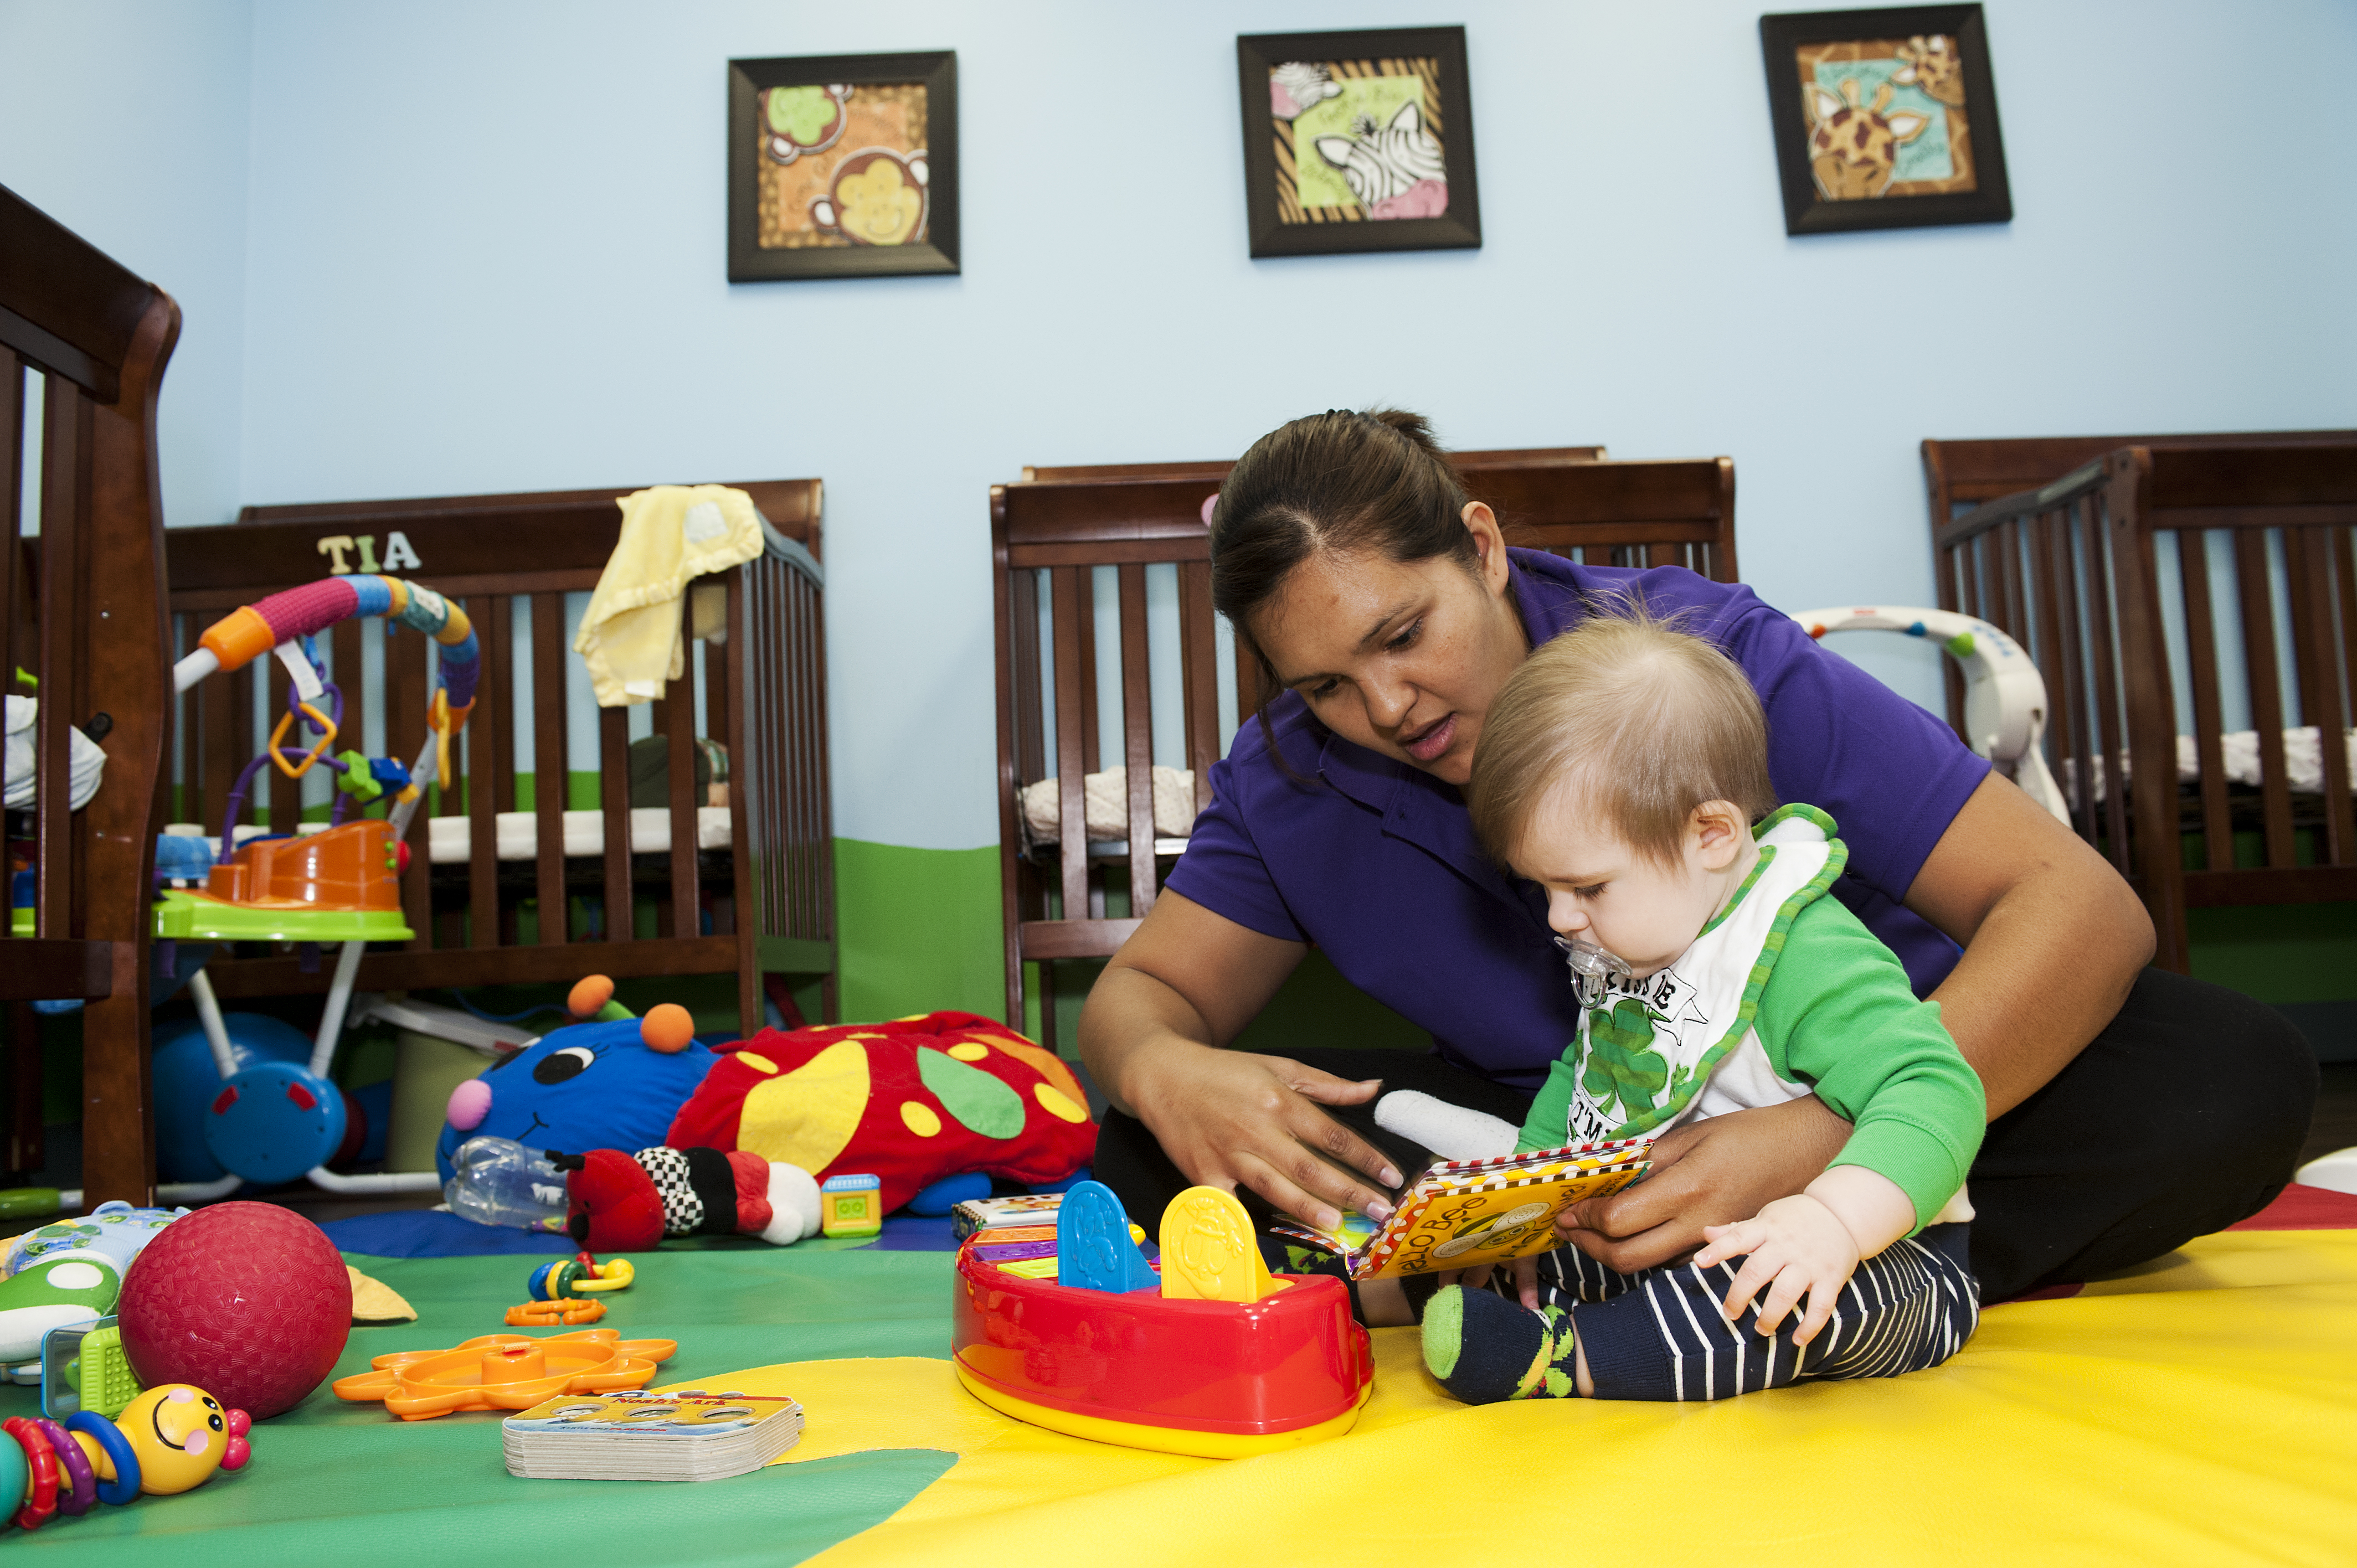 Five Steps To Finding Quality Child Care  Houston Family. Creative Kitchens And Baths Items To Donate. Air Force Eod Training Davis Moore Ponca City. Iso 27001 Audit Checklist Lexus Repair Dallas. What Is A Medical Assistant Cti Credit Card. Samsung Prostar Phone System. Non Small Cell Lung Cancer Definition. Social Media Marketing Strategy. Denver Real Estate Attorney Zac Efron Rehab